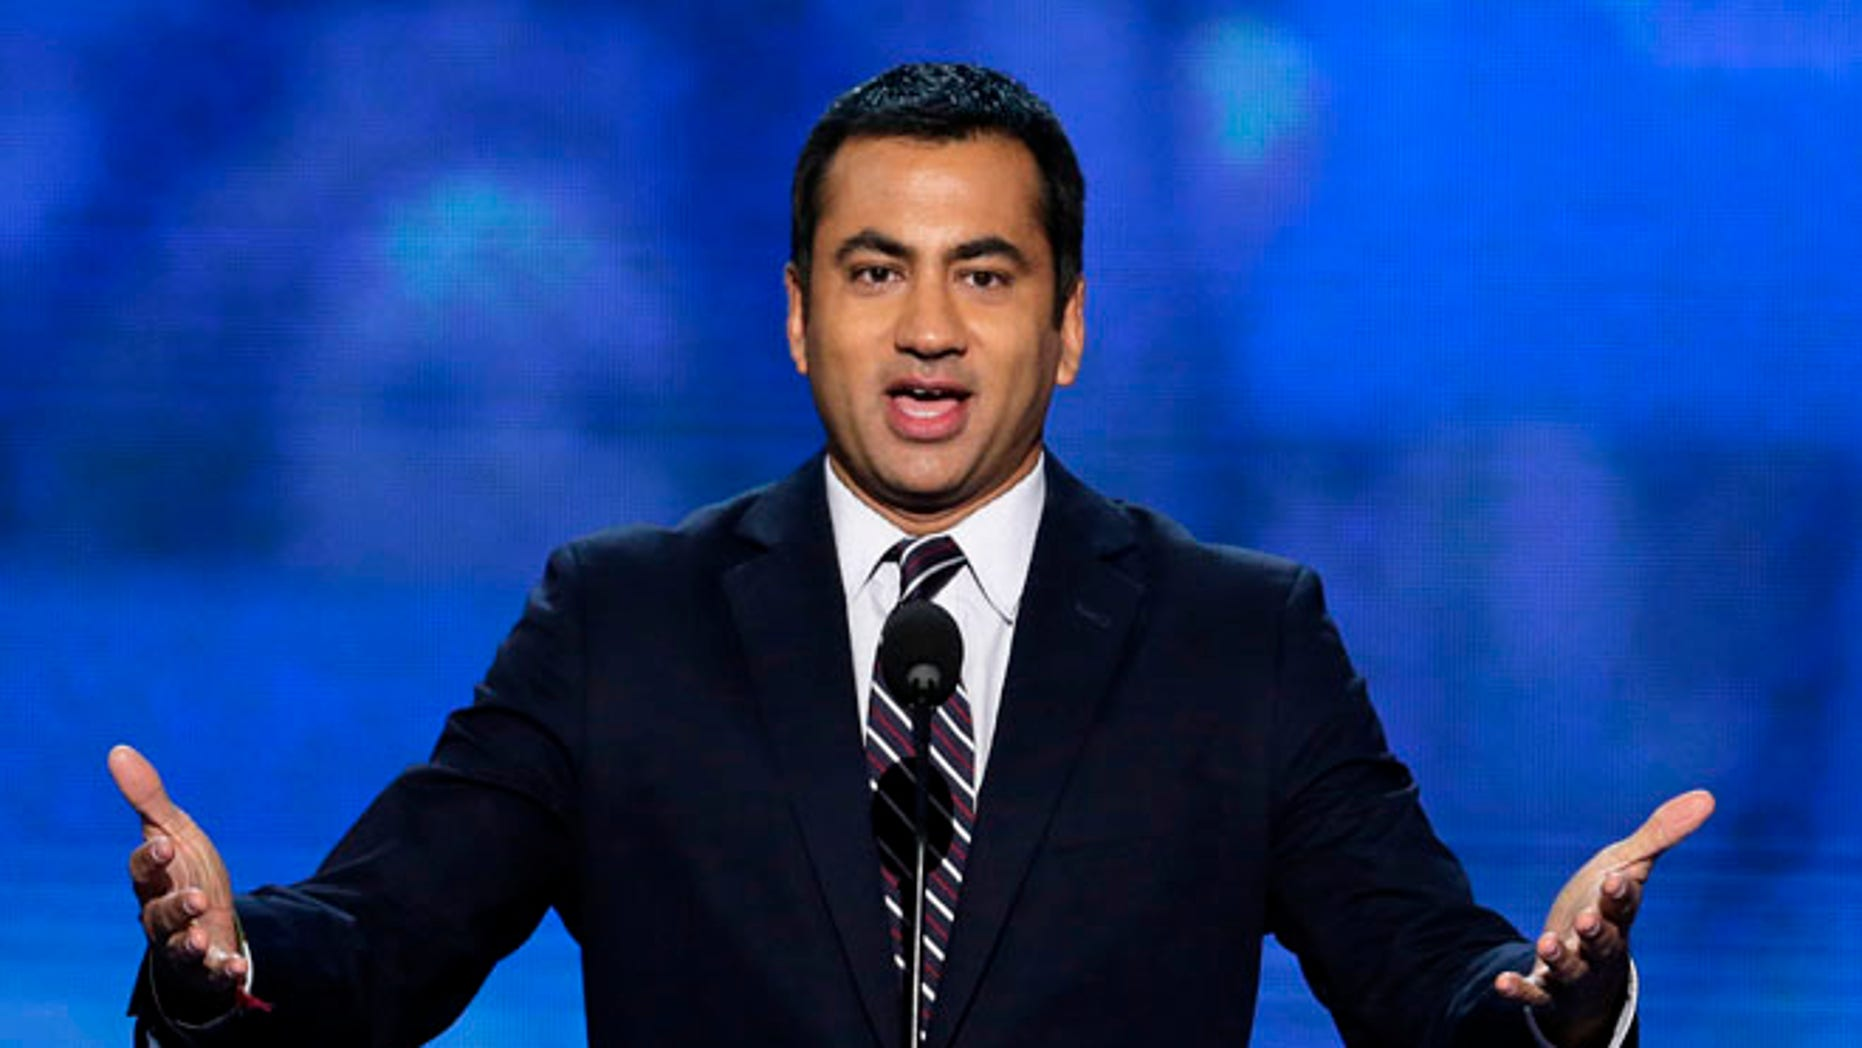 In this Sept. 4, 2012 file photo, Actor Kal Penn addresses the Democratic National Convention in Charlotte, N.C.